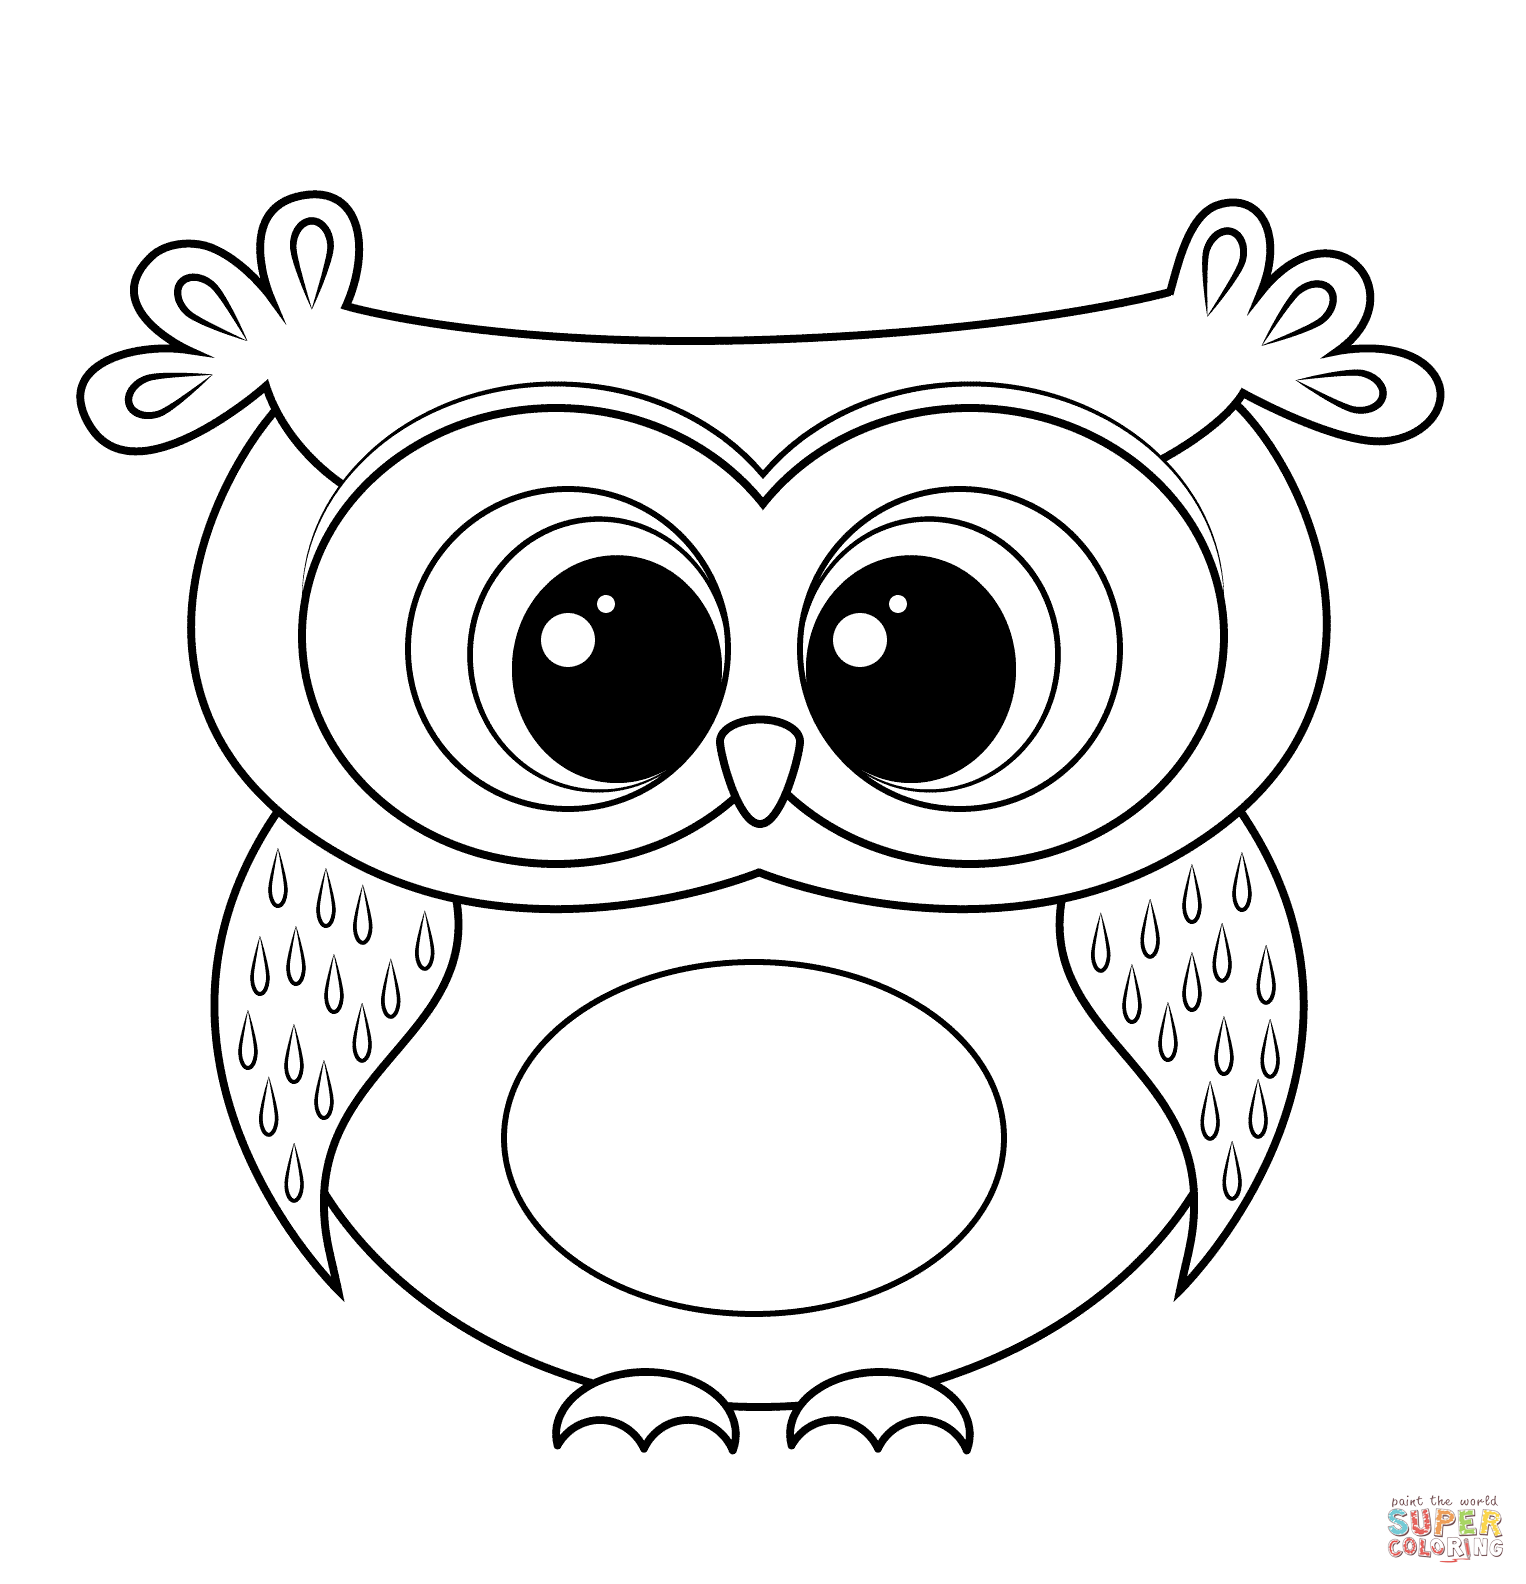 owl print out coloring pages owl print out coloring pages at getcoloringscom free out pages coloring print owl